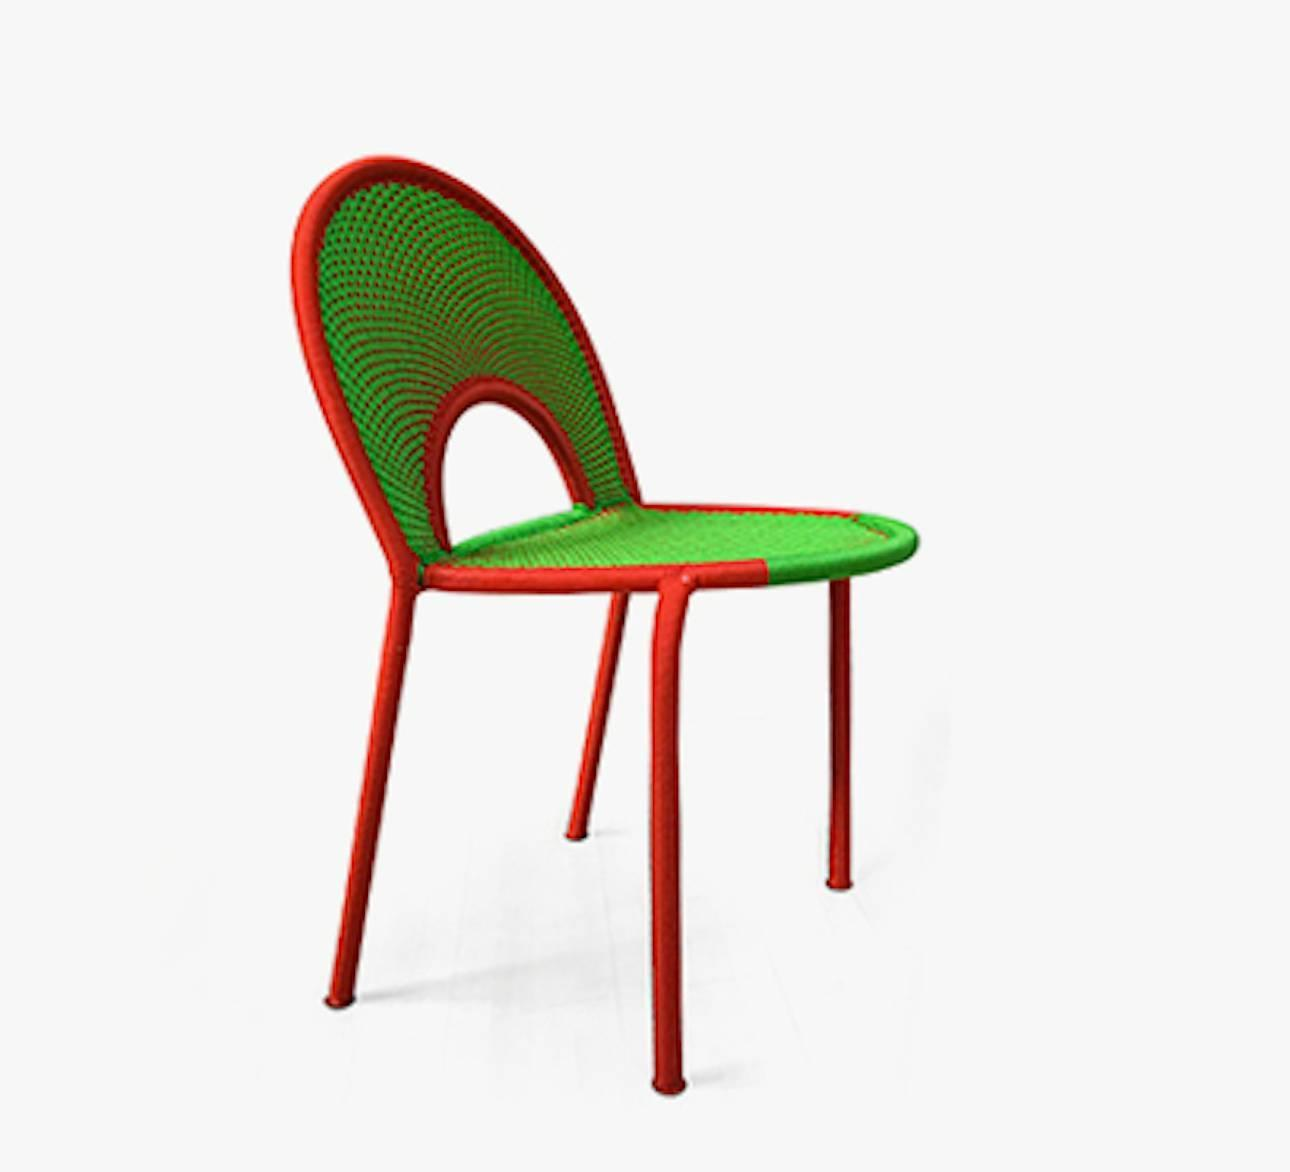 Banjooli Chair By Sebastian Herkner For Moroso For Indoor And Outdoor For  Sale At 1stdibs